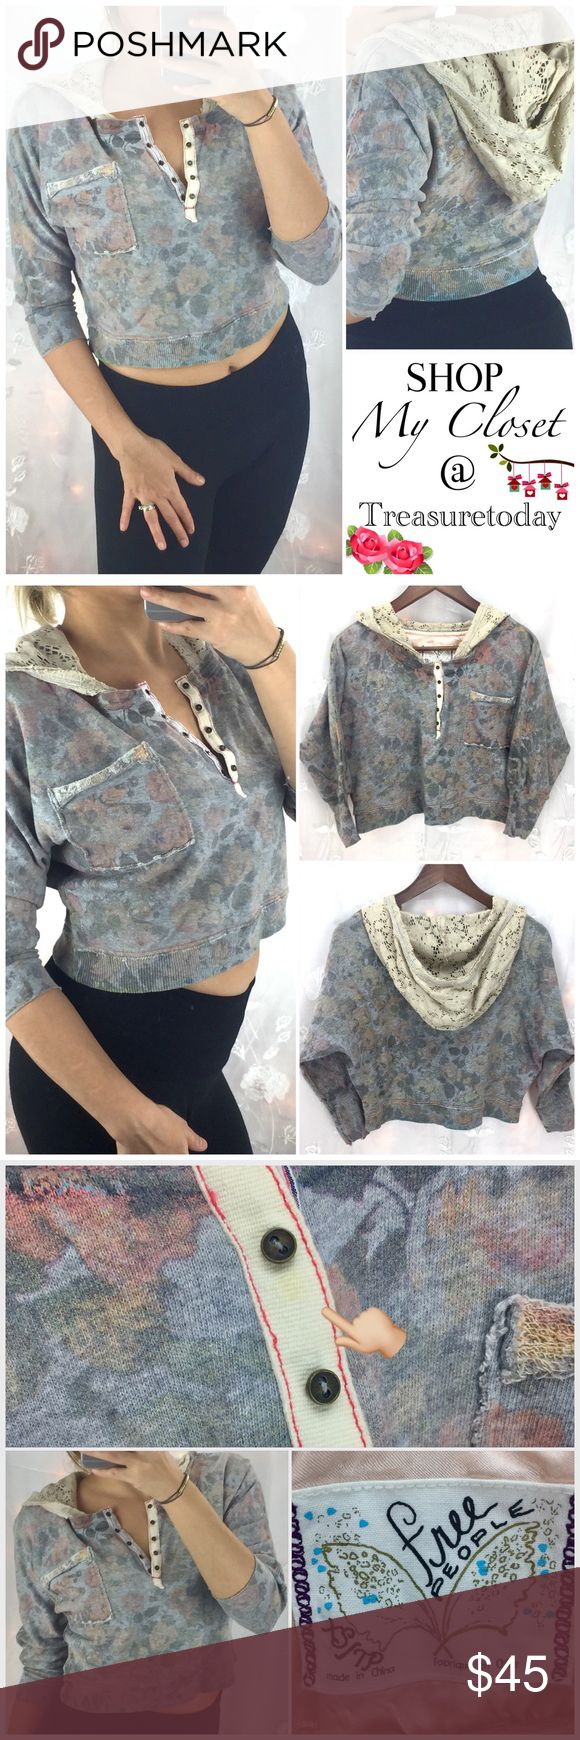 Free People Floral Batwing Crop Top + Crochet Hood So adorable! Very rare and hard to find. Faded floral print on a batwing Crop Top with beige crochet hood. 3/4 sleeves, front button up closure. One tiny , not noticeable spot shown in last picture. Can't see it but just wanted to mention- will come out. Fits up to size medium. Feel free to ask any question, I'm here to help! 🎉Offers welcome 🎉 Bundle 2 or more items and get %10 off instantly💕 all pictures are taken by me Free People Tops…